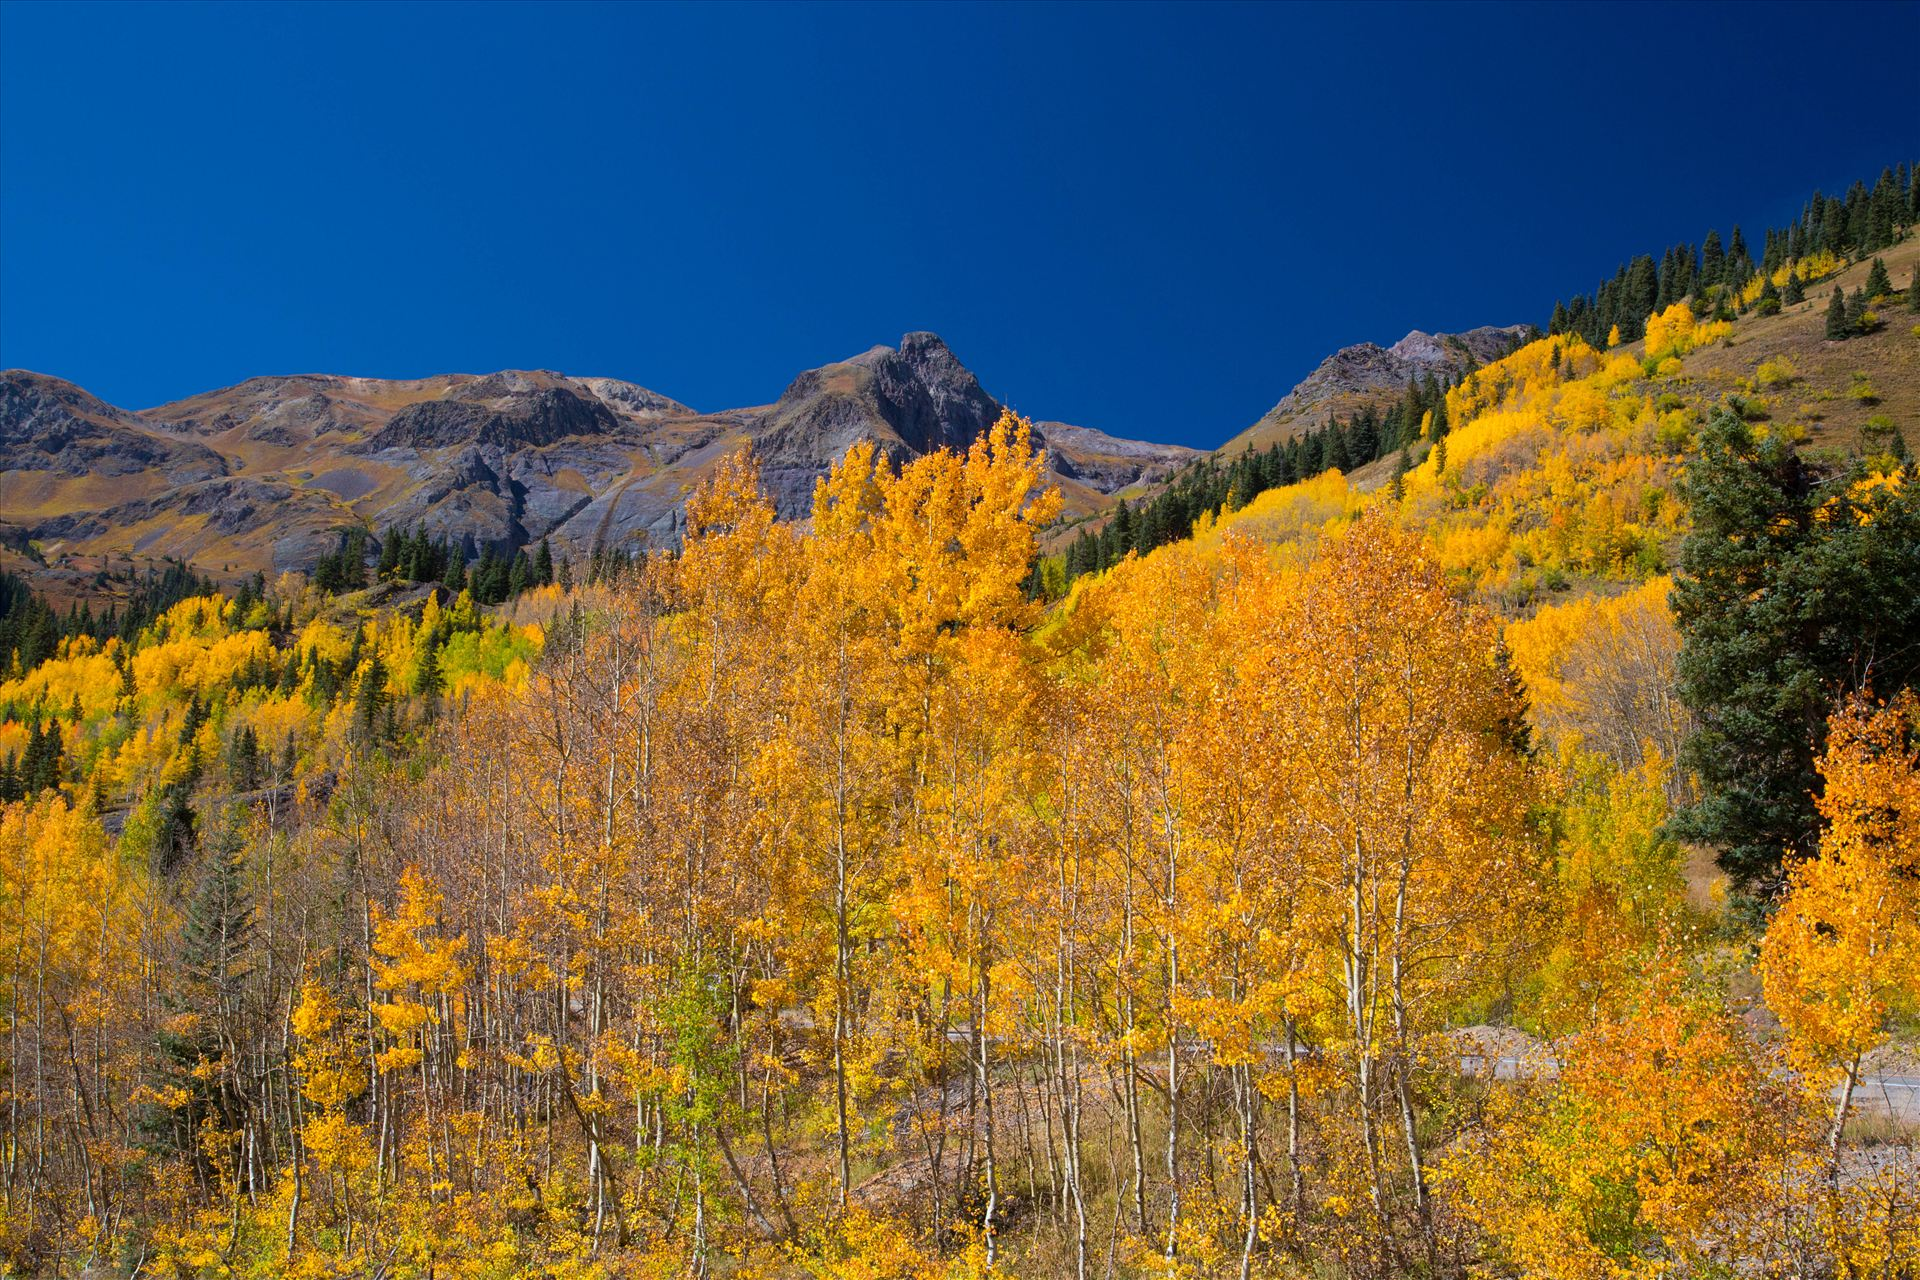 Million Dollar Highway - A quick shot of the aspens from the million dollar highway between Ourway and Silverton, Colorado. by D Scott Smith